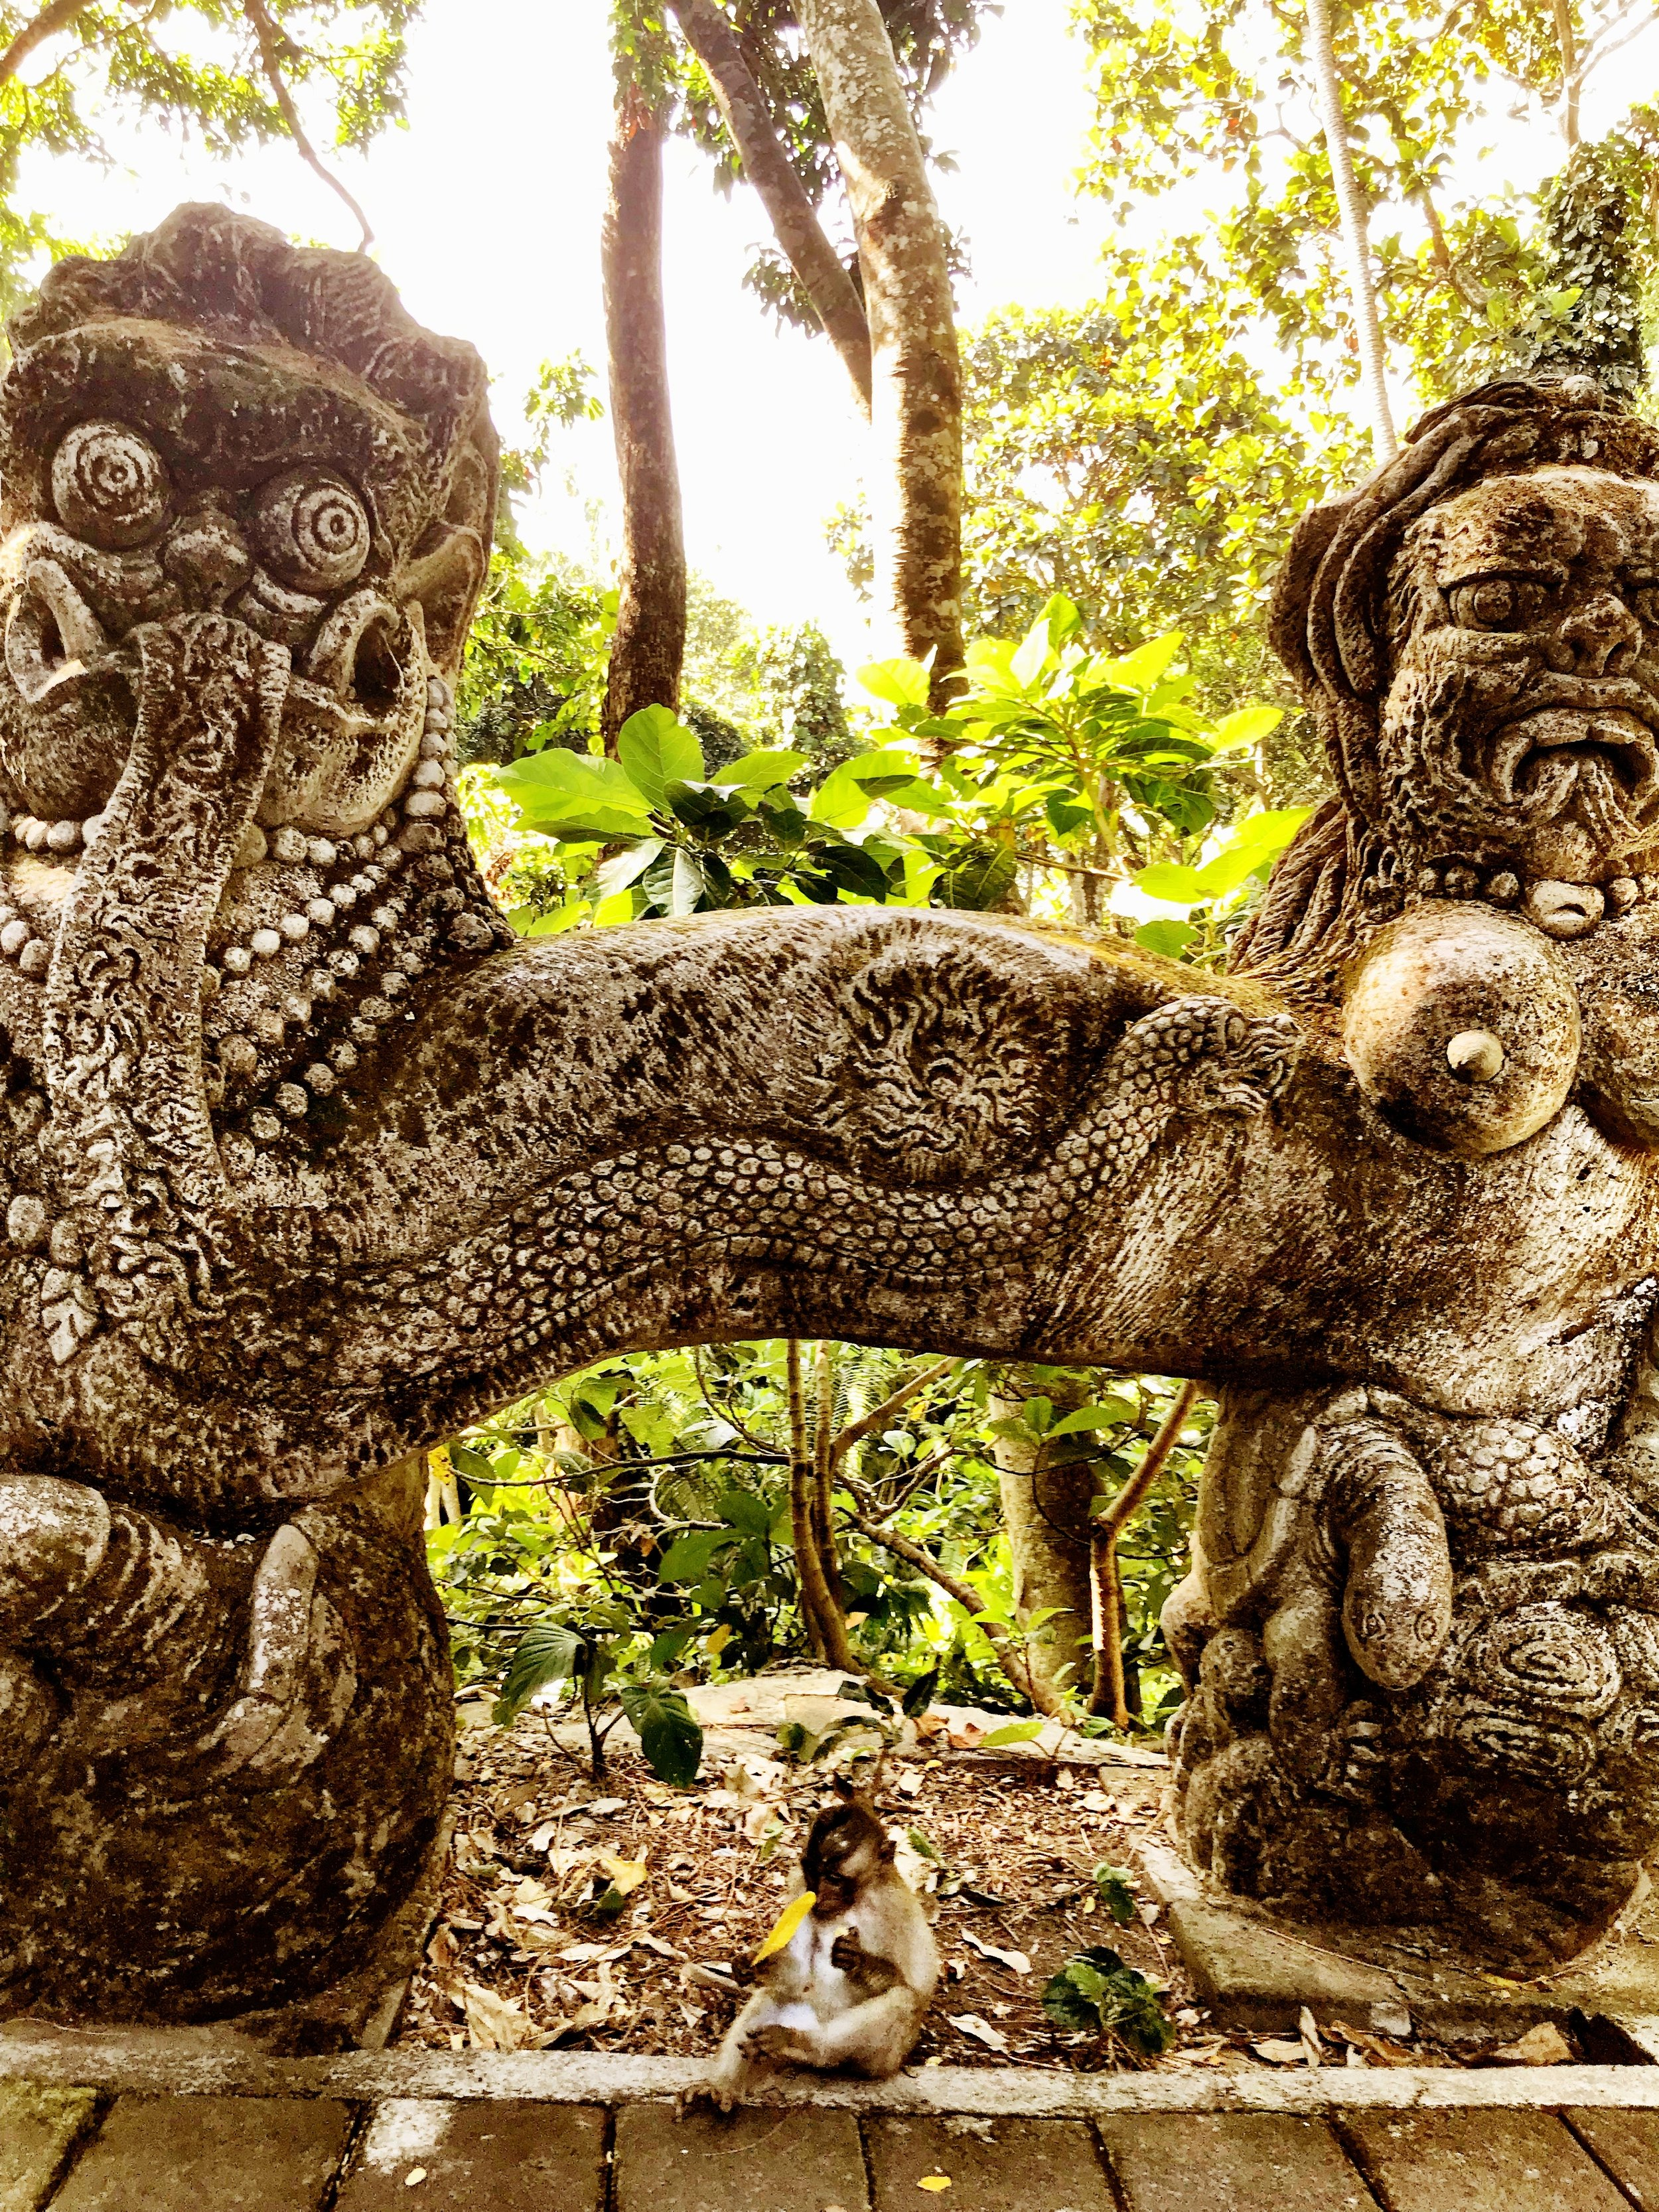 Statues in the Monkey Forest tend to be grotesque — which Duke and Wally love